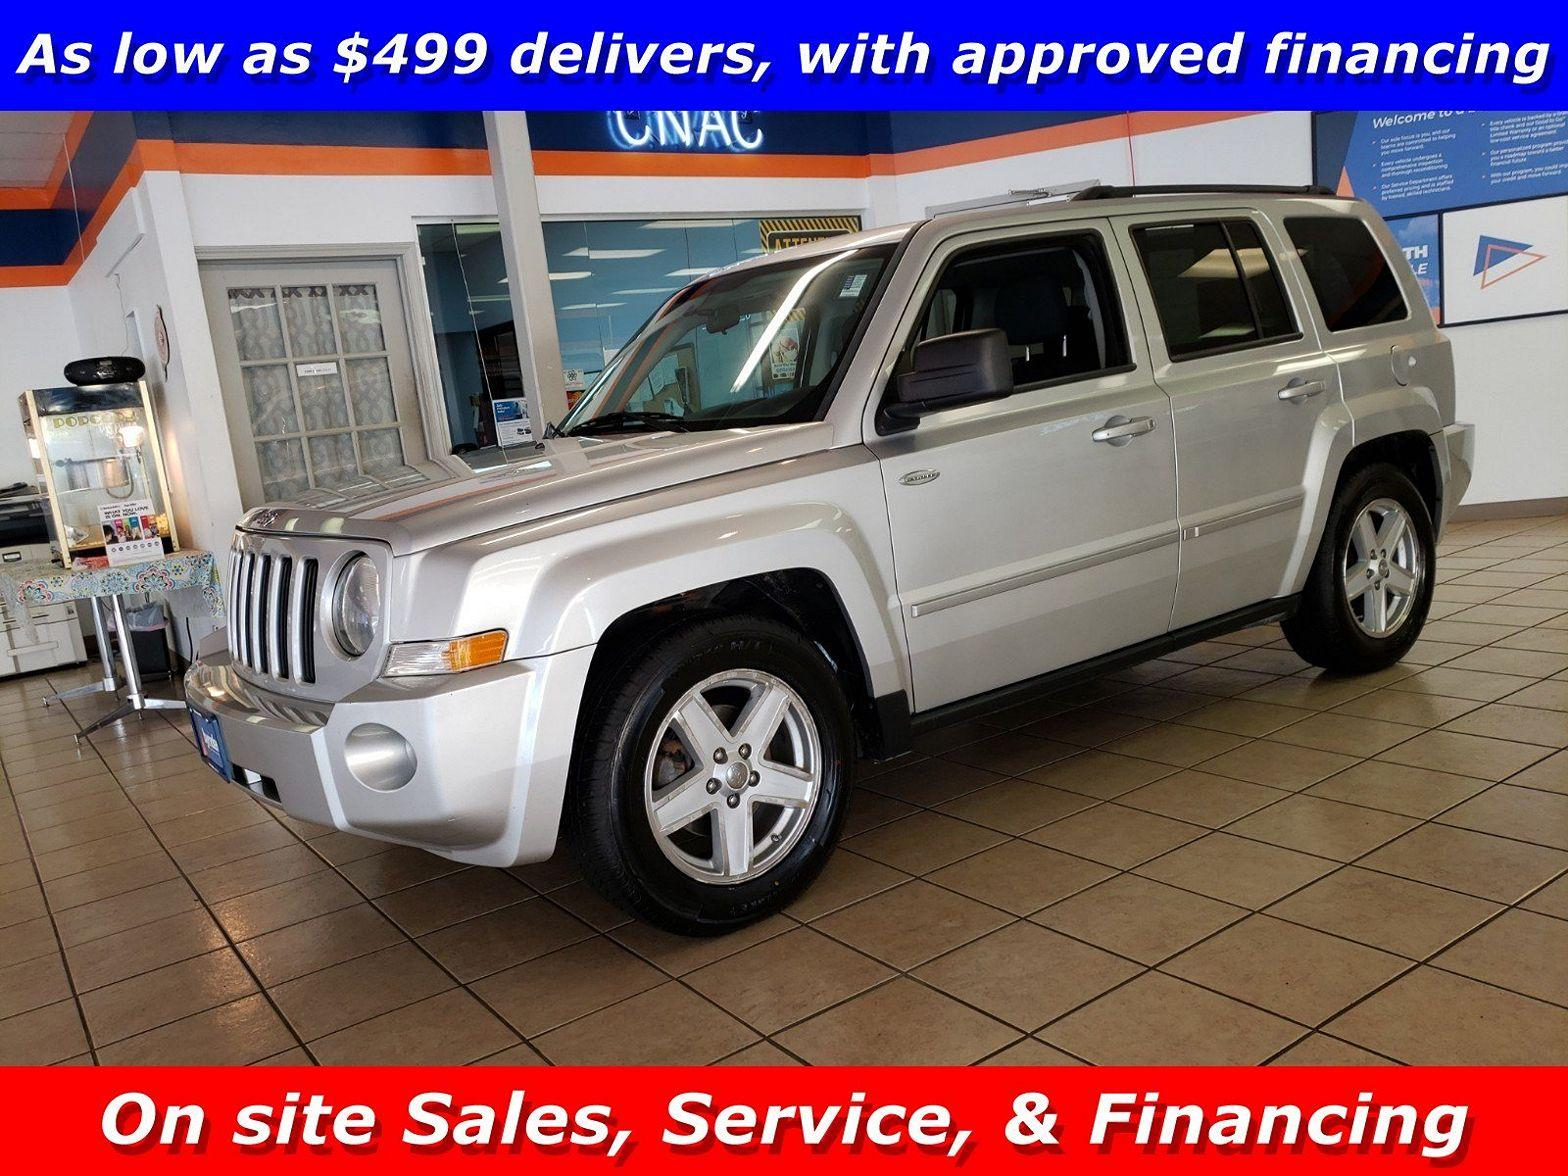 2010 Jeep Patriot $499